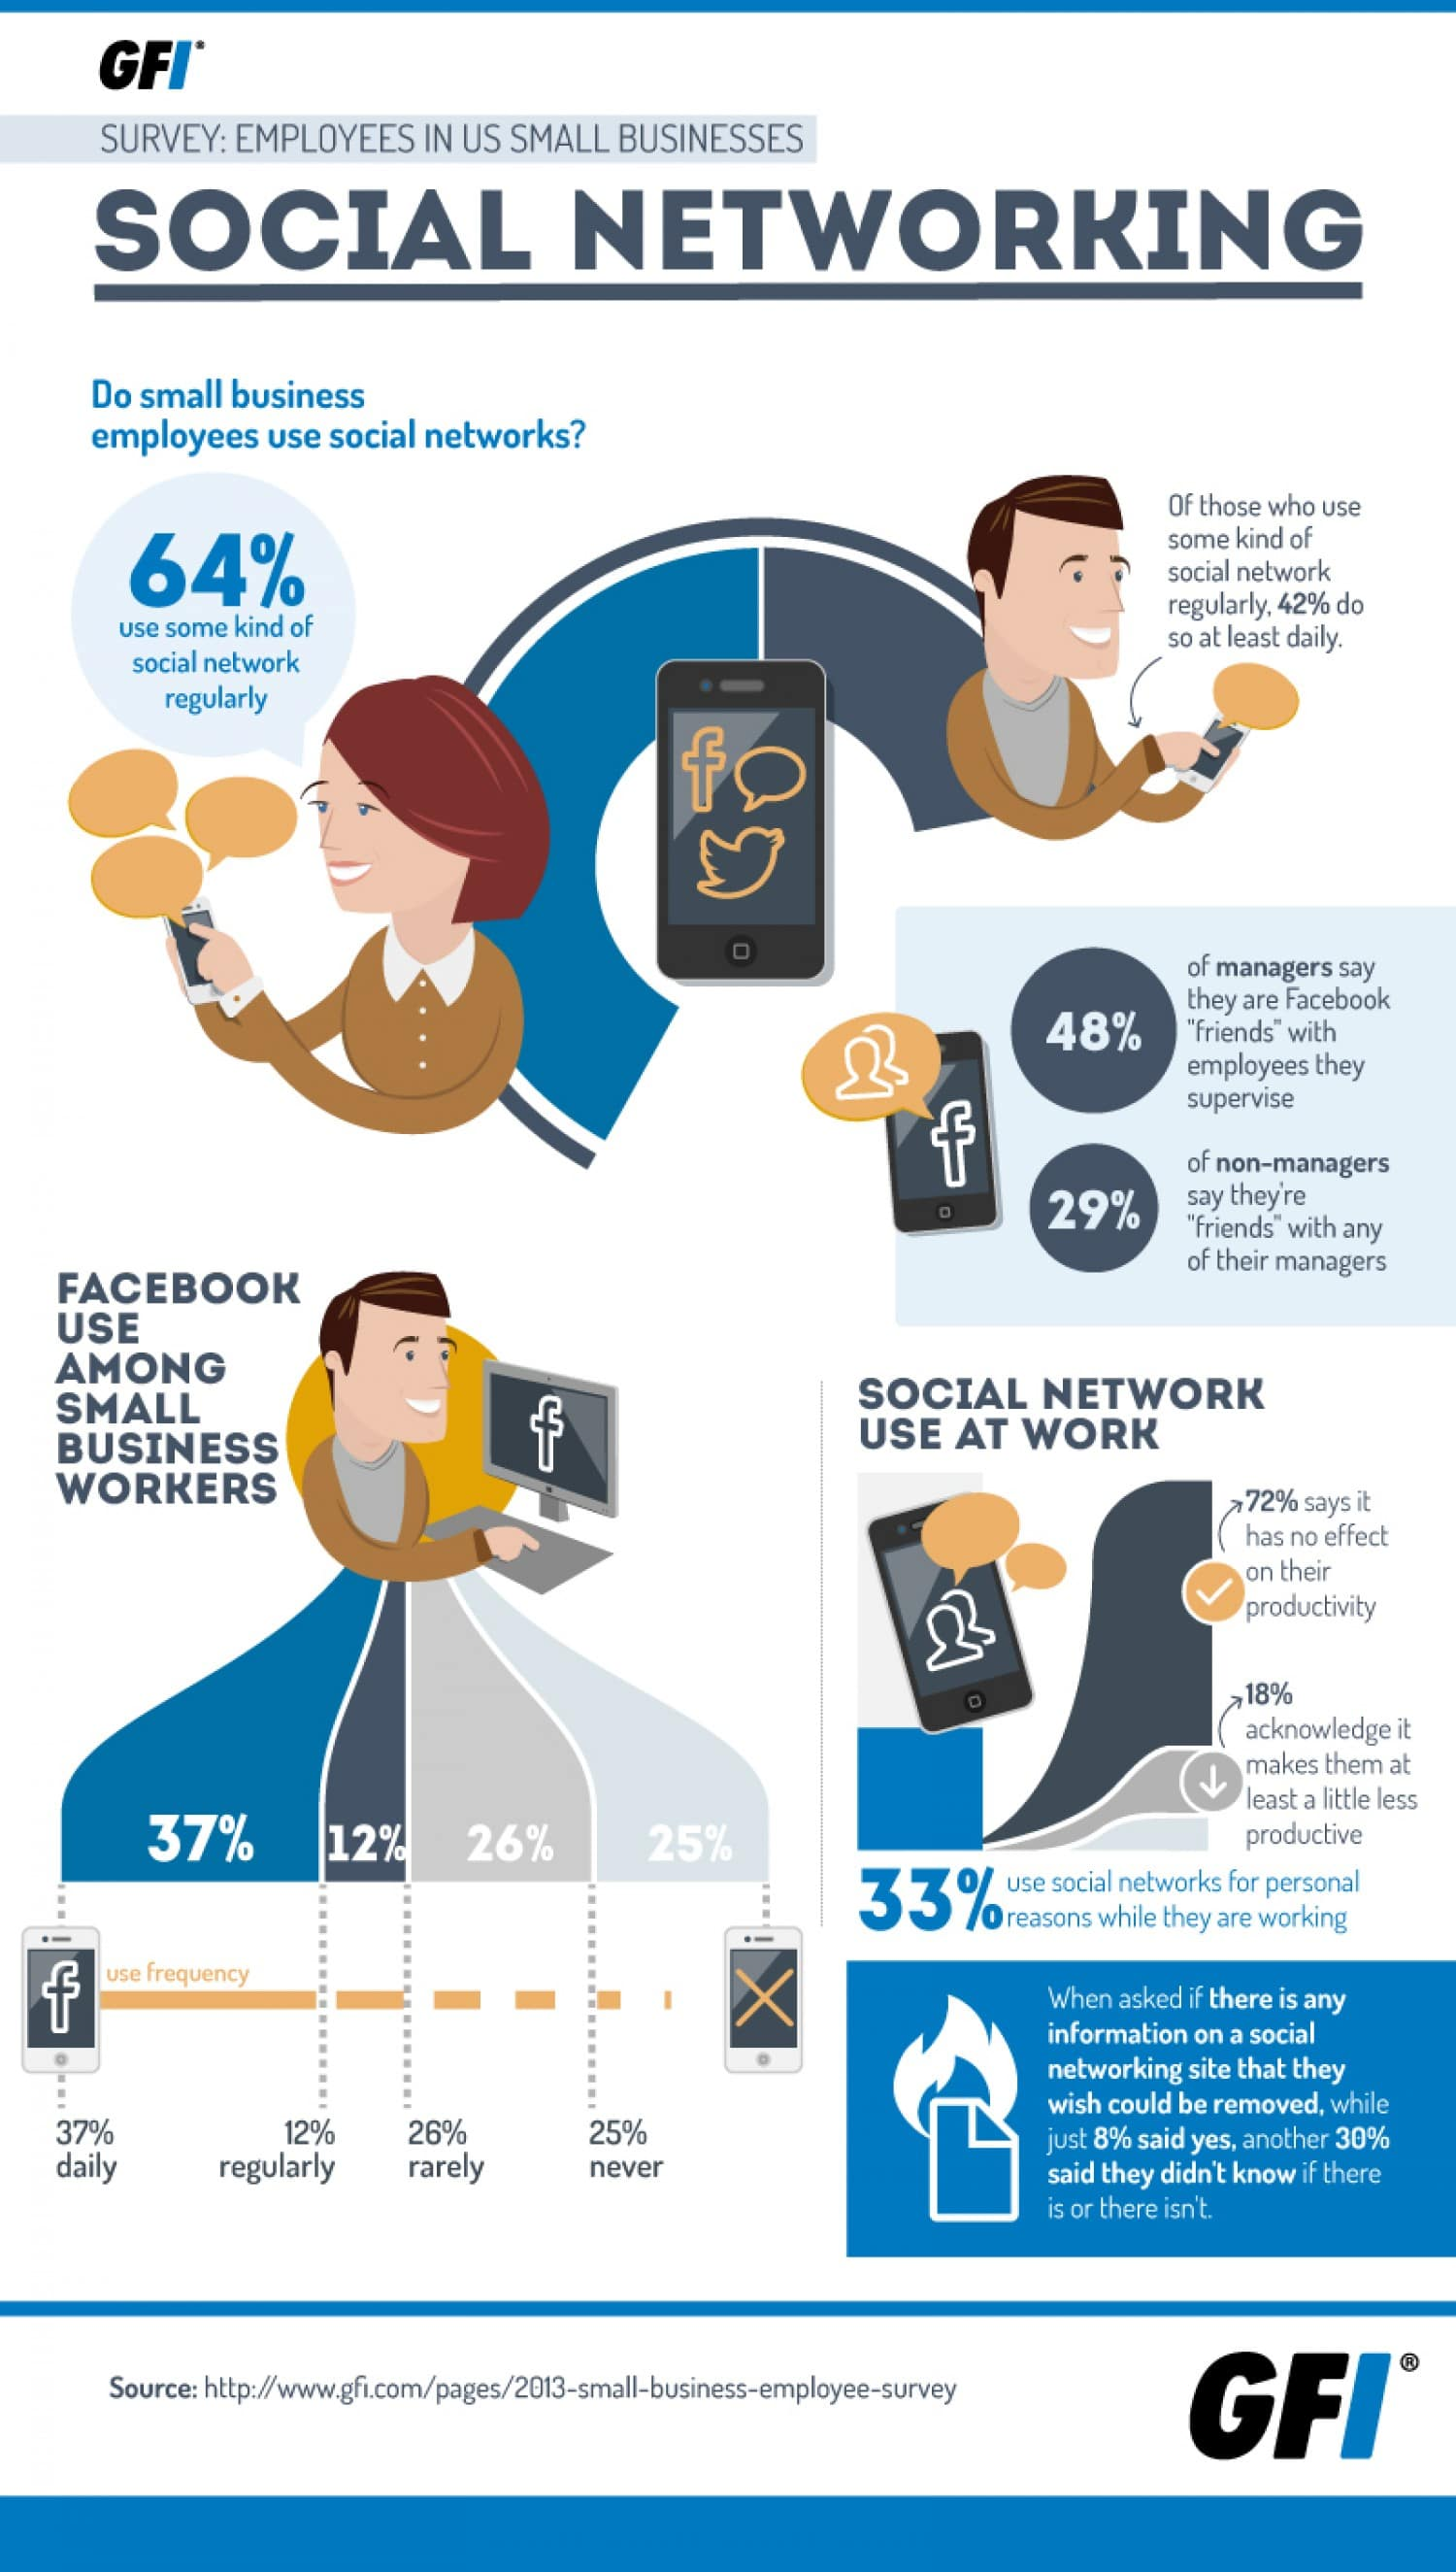 survey-says-small-business-workers-get-social_52c092589264d_w1500